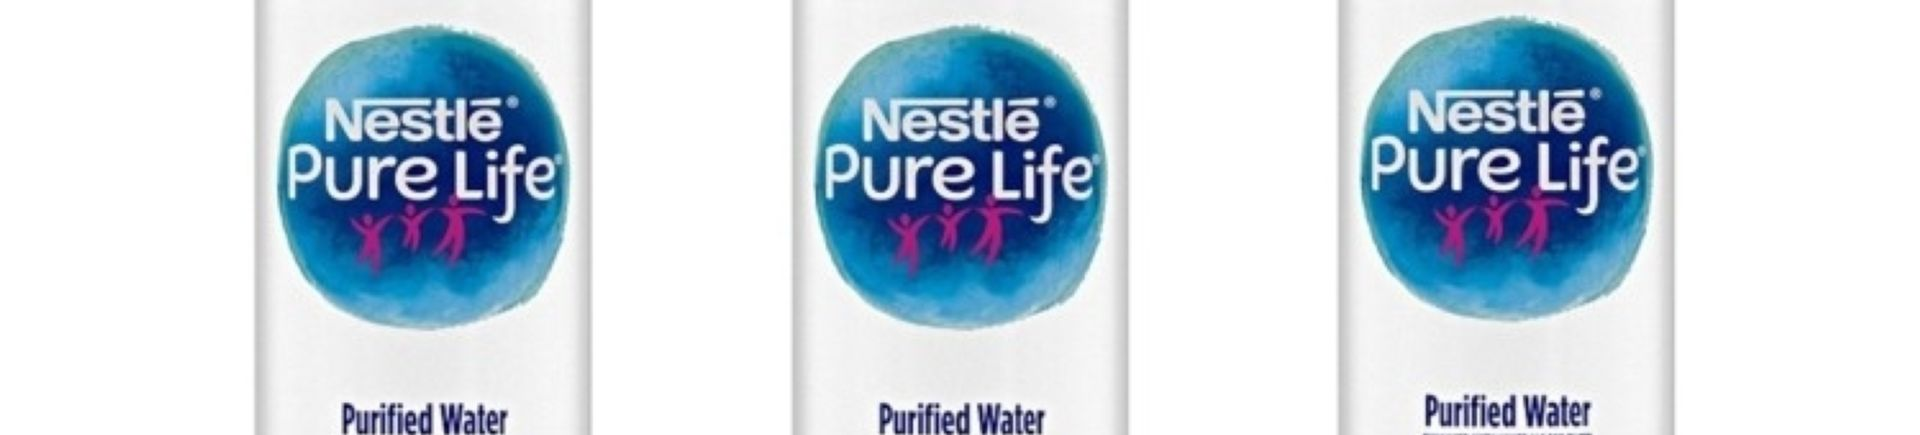 Nestlé Waters' Pure Life